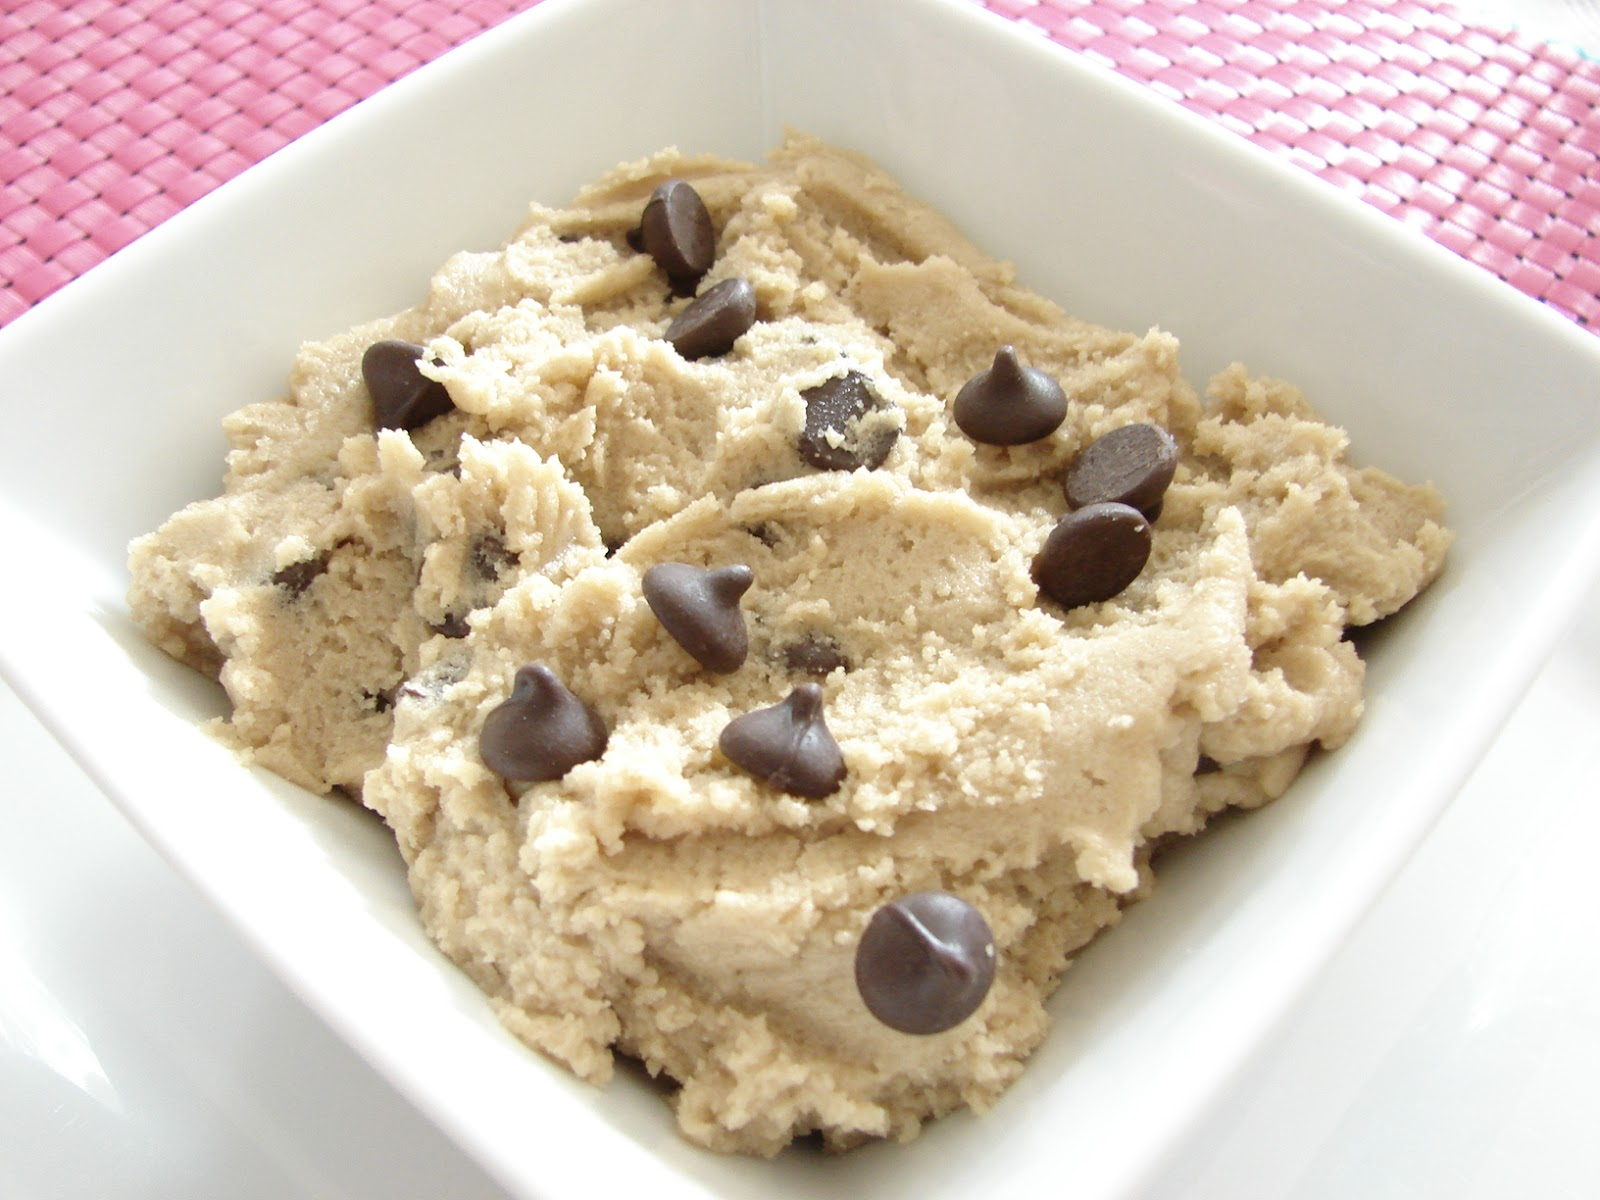 Edible Chocolate Chip Cookie Dough Recipe Without Brown Sugar